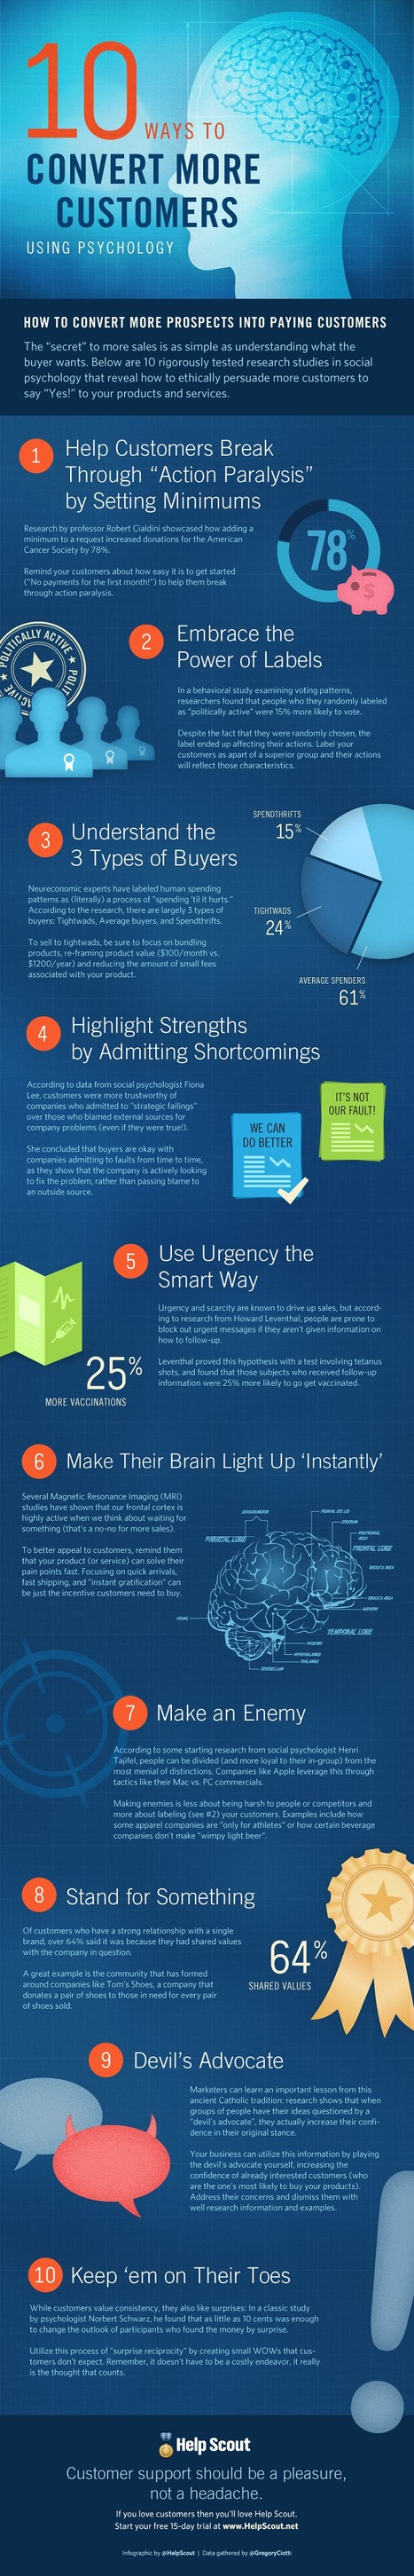 10 Ways to Convert More Customers With Psychology [INFOGRAPHIC] | MarketingHits | Scoop.it